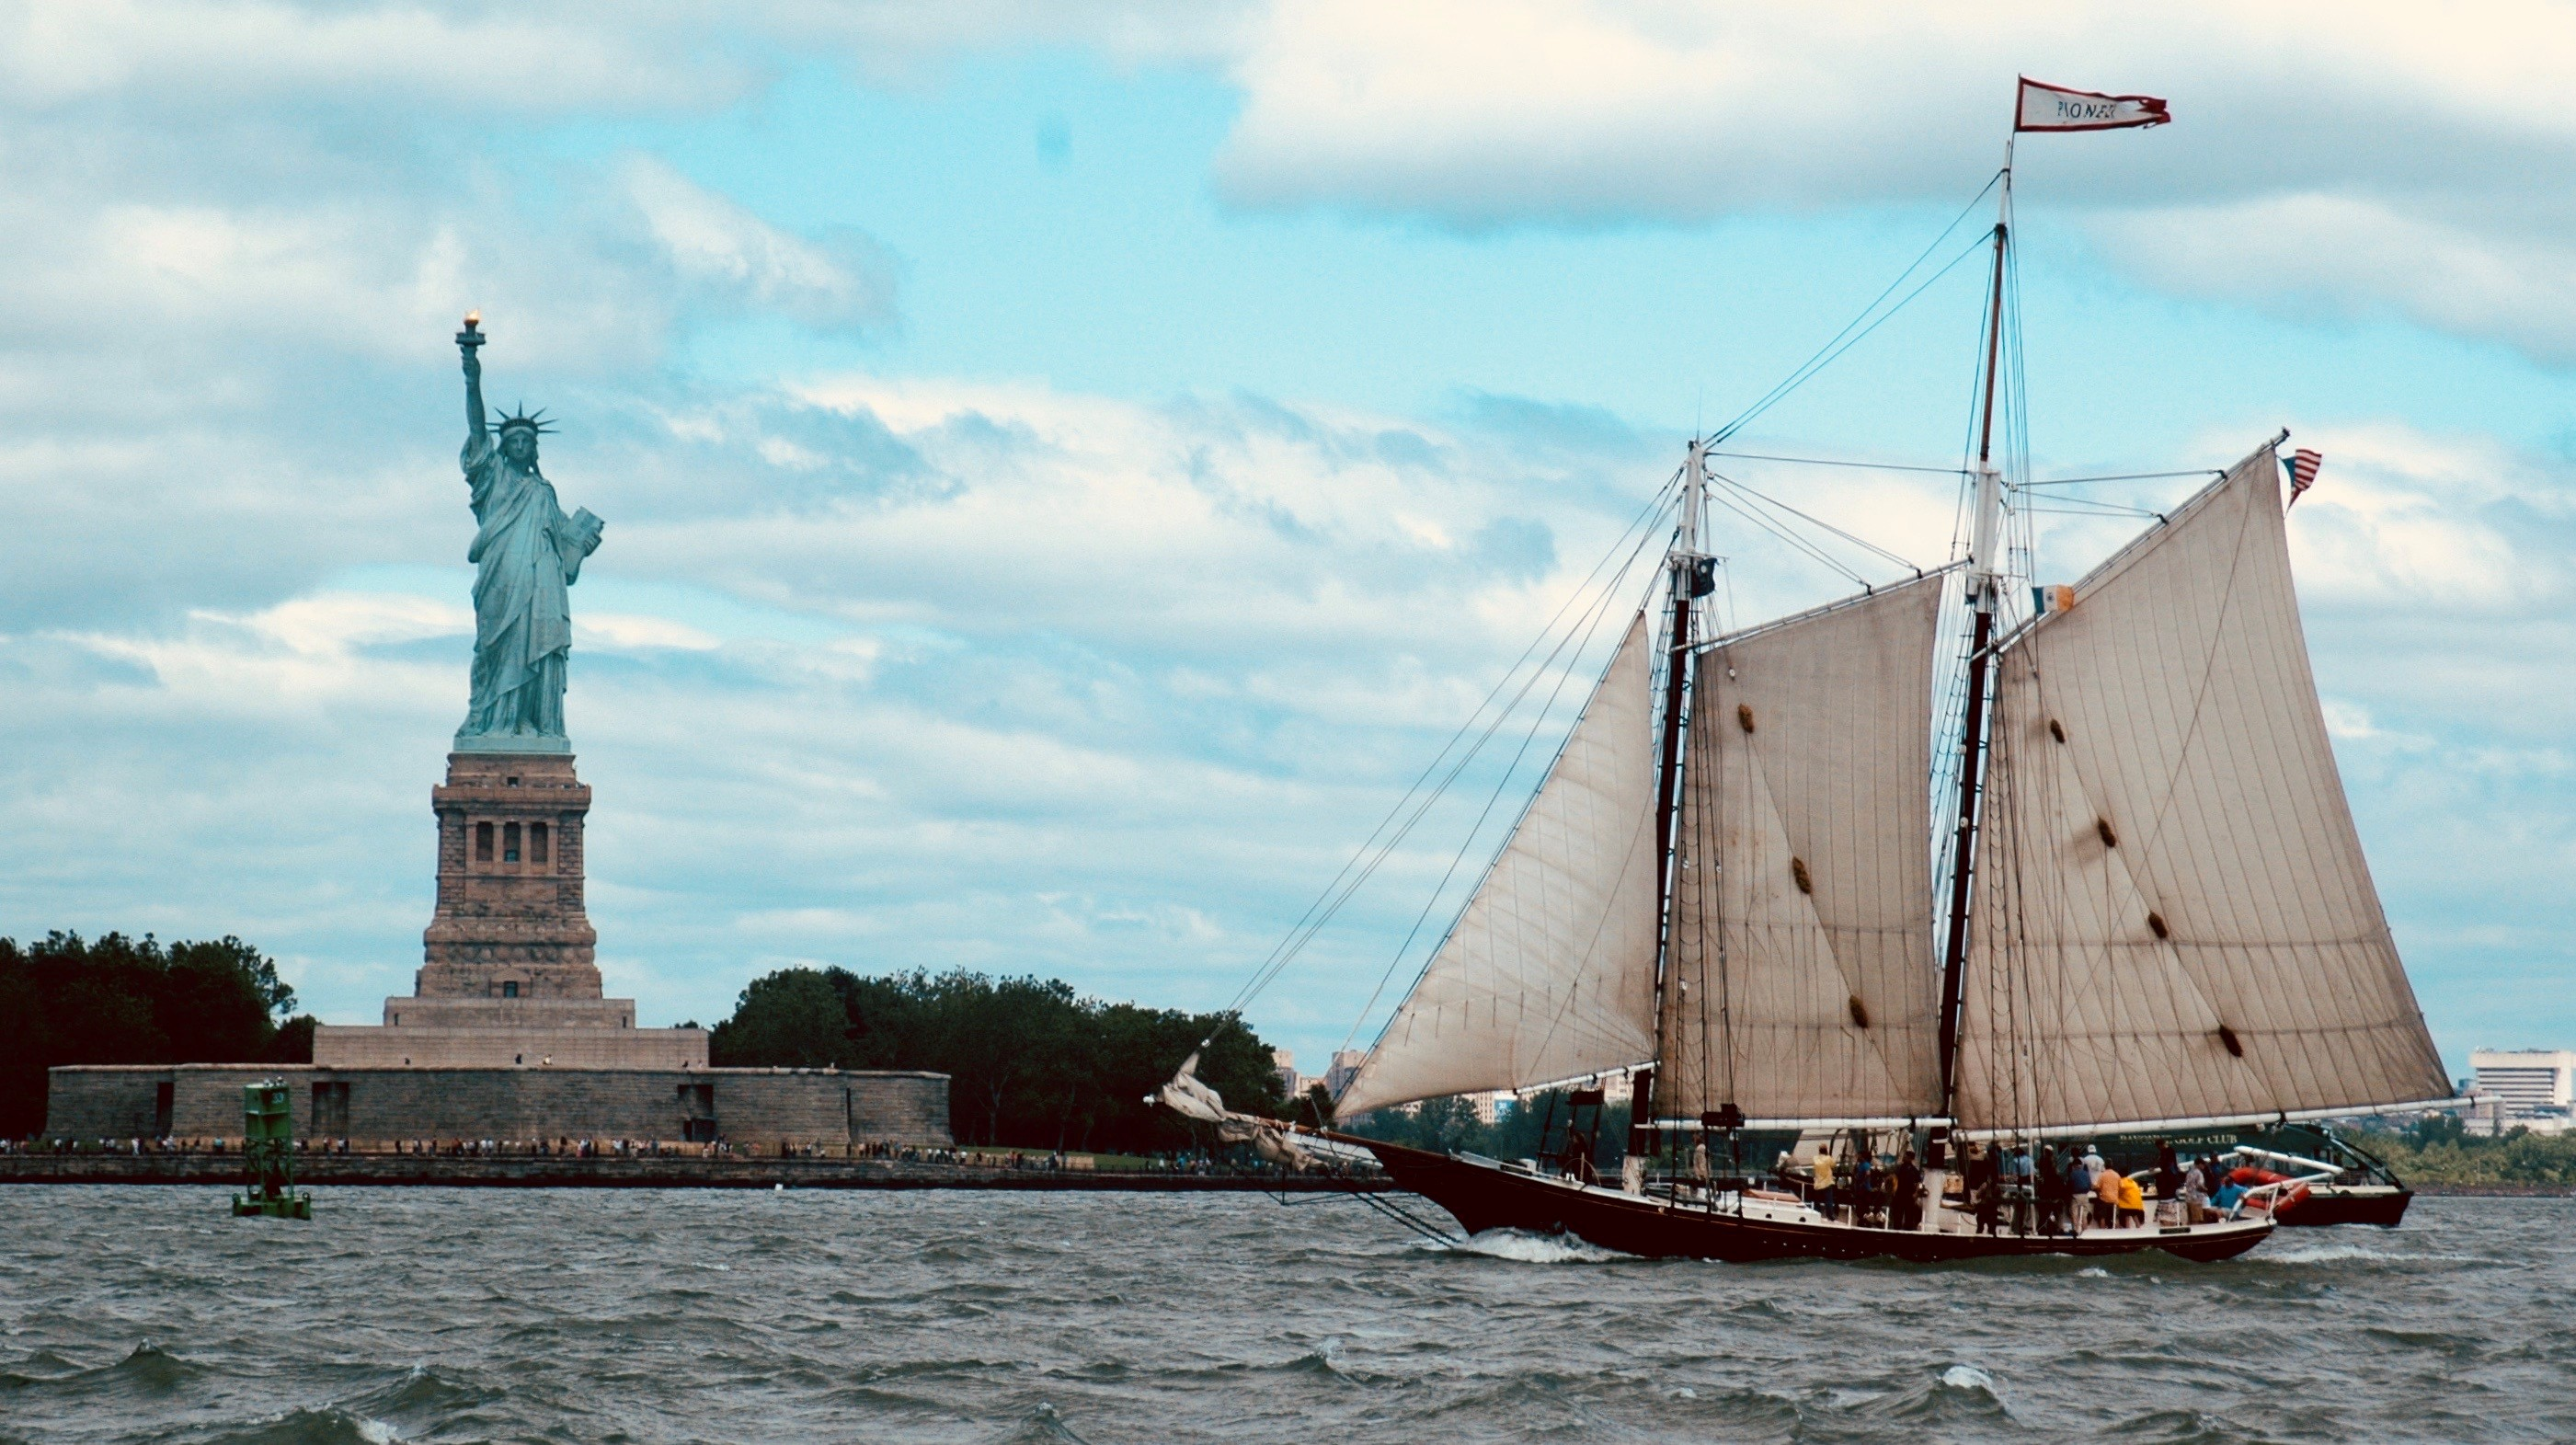 The Statue of Liberty and the Pioneer